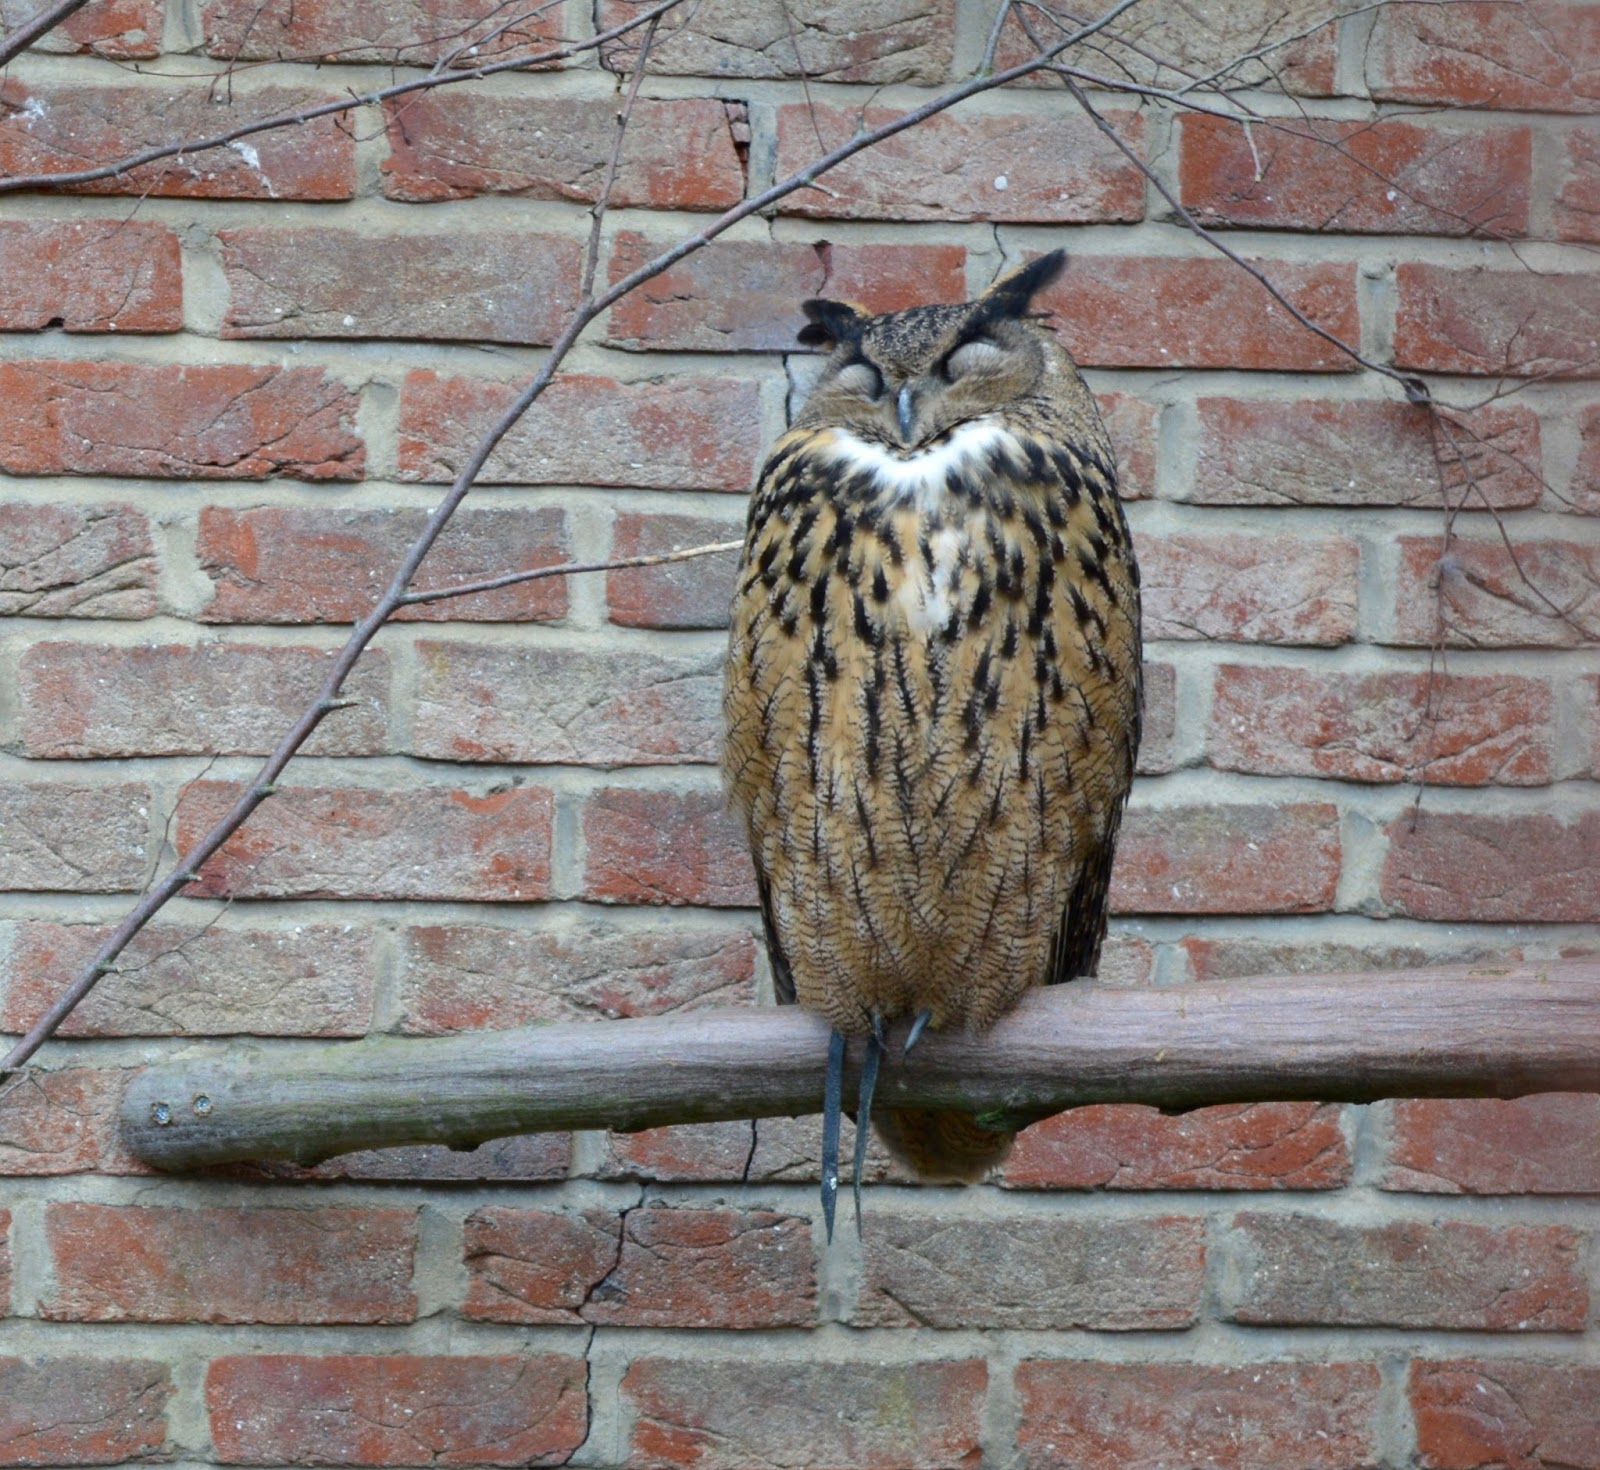 Visiting Angry Birds Activity Park at Lightwater Valley, North Yorkshire - Eagle Owl Birds of Prey